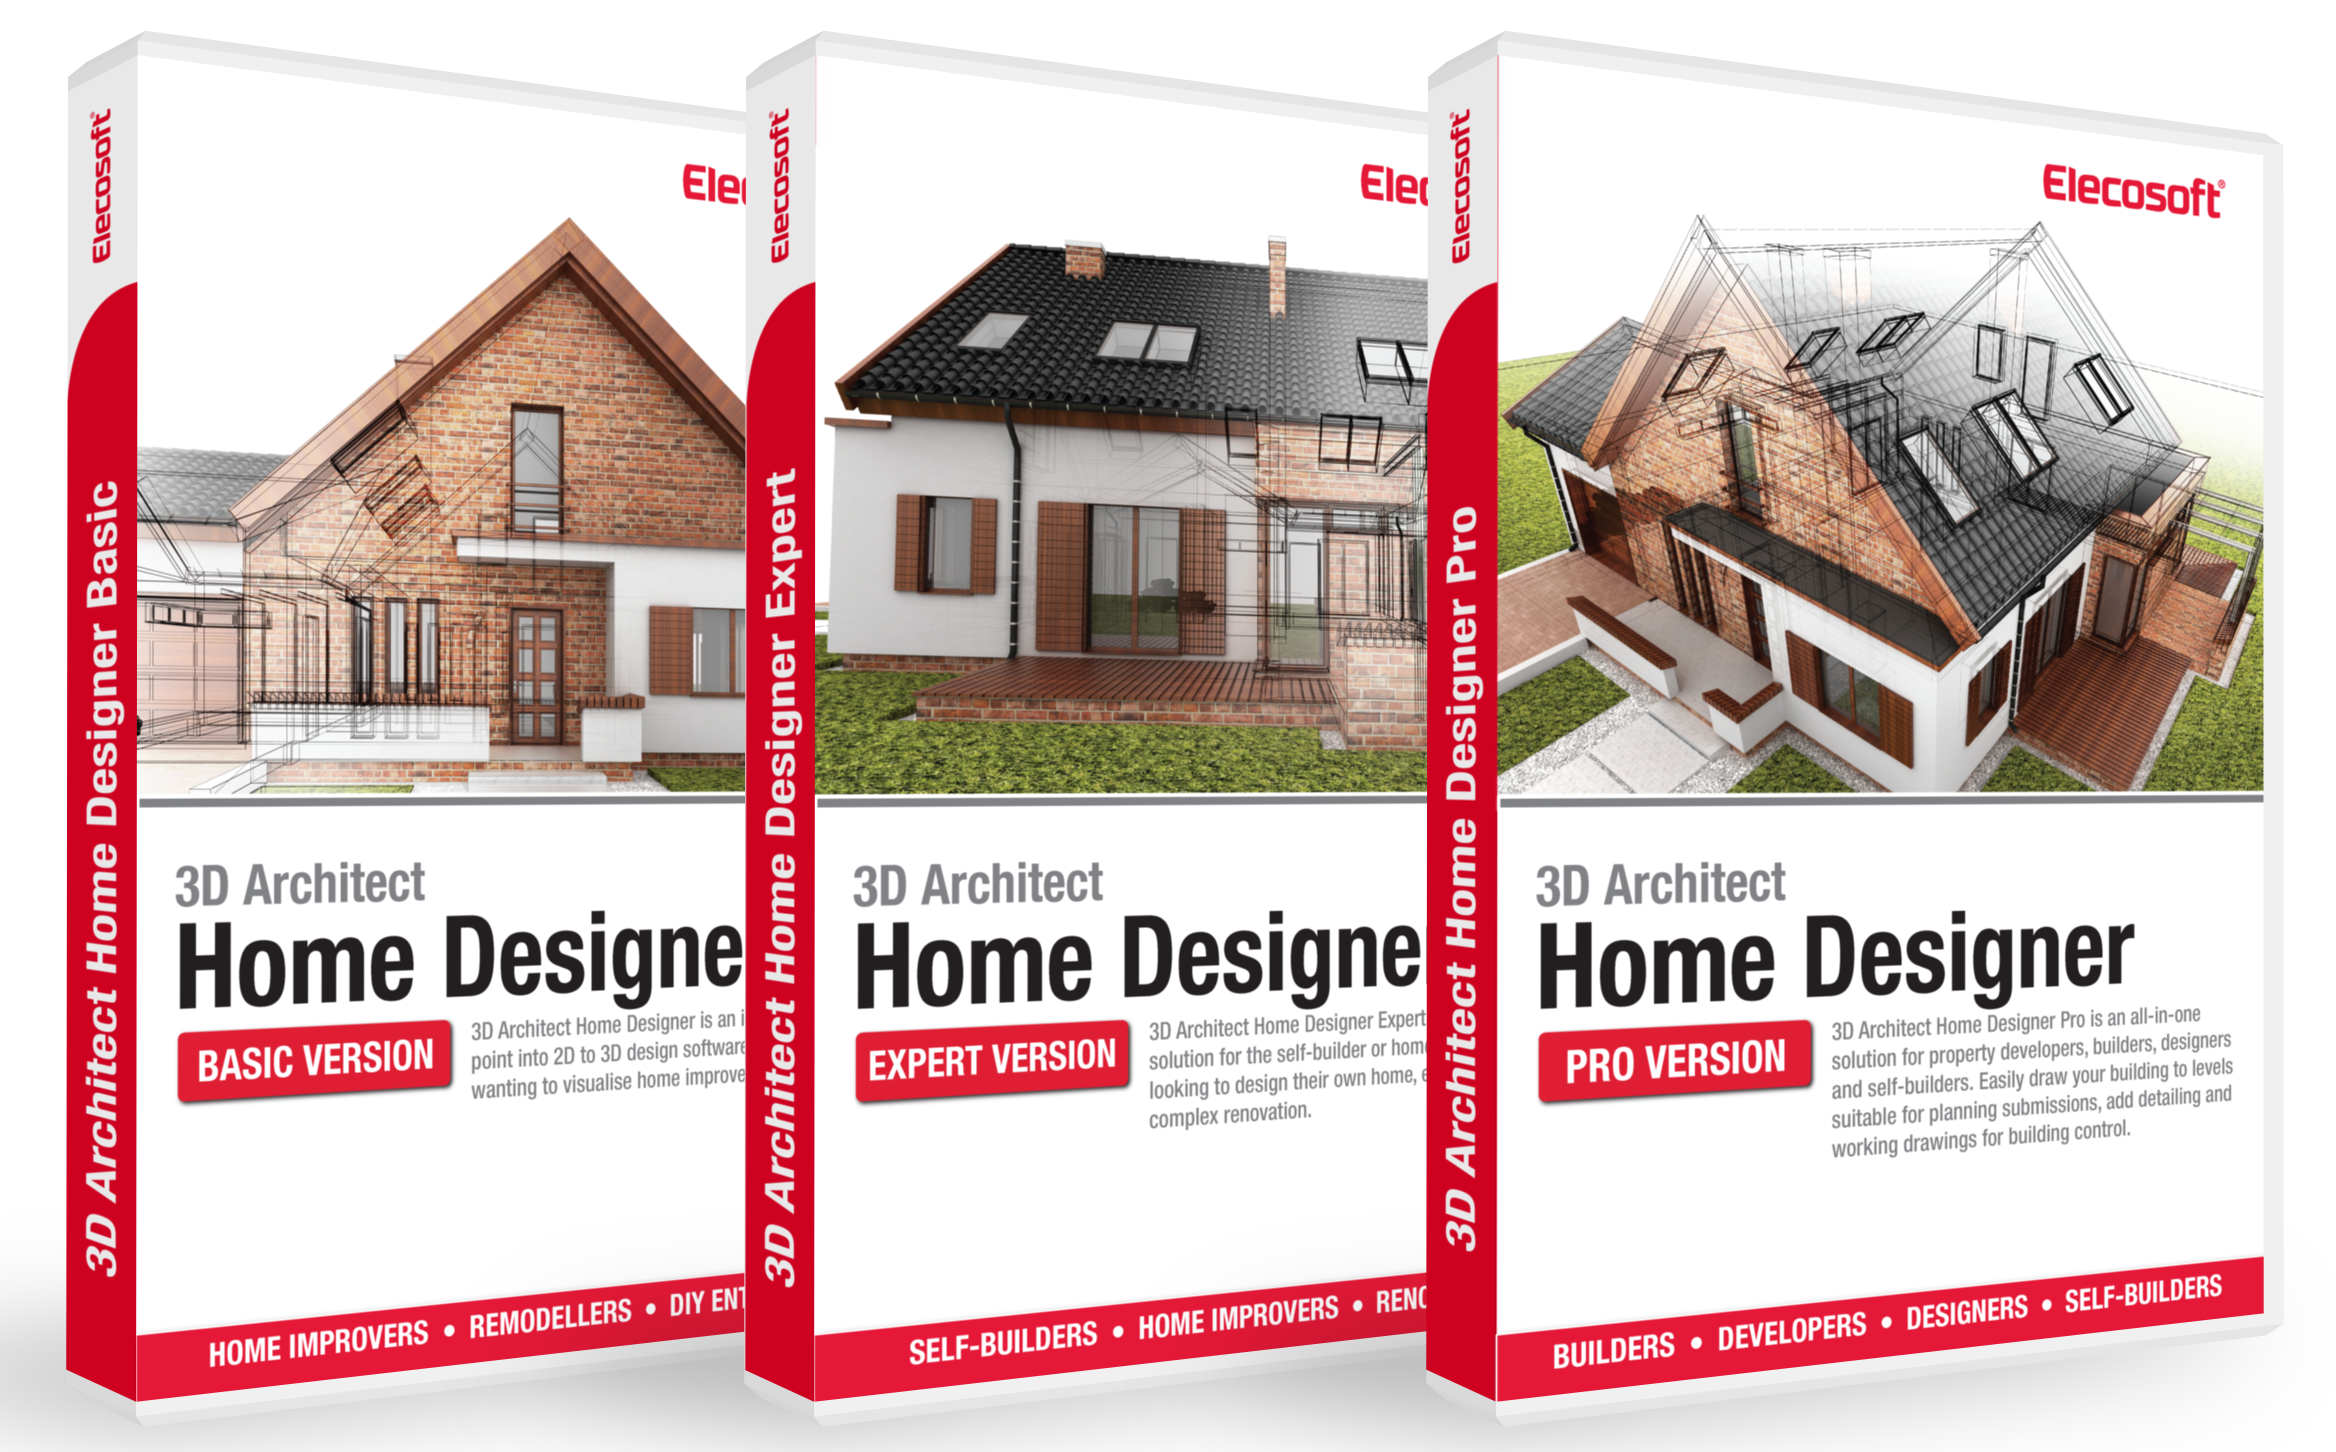 3D Architect home design software